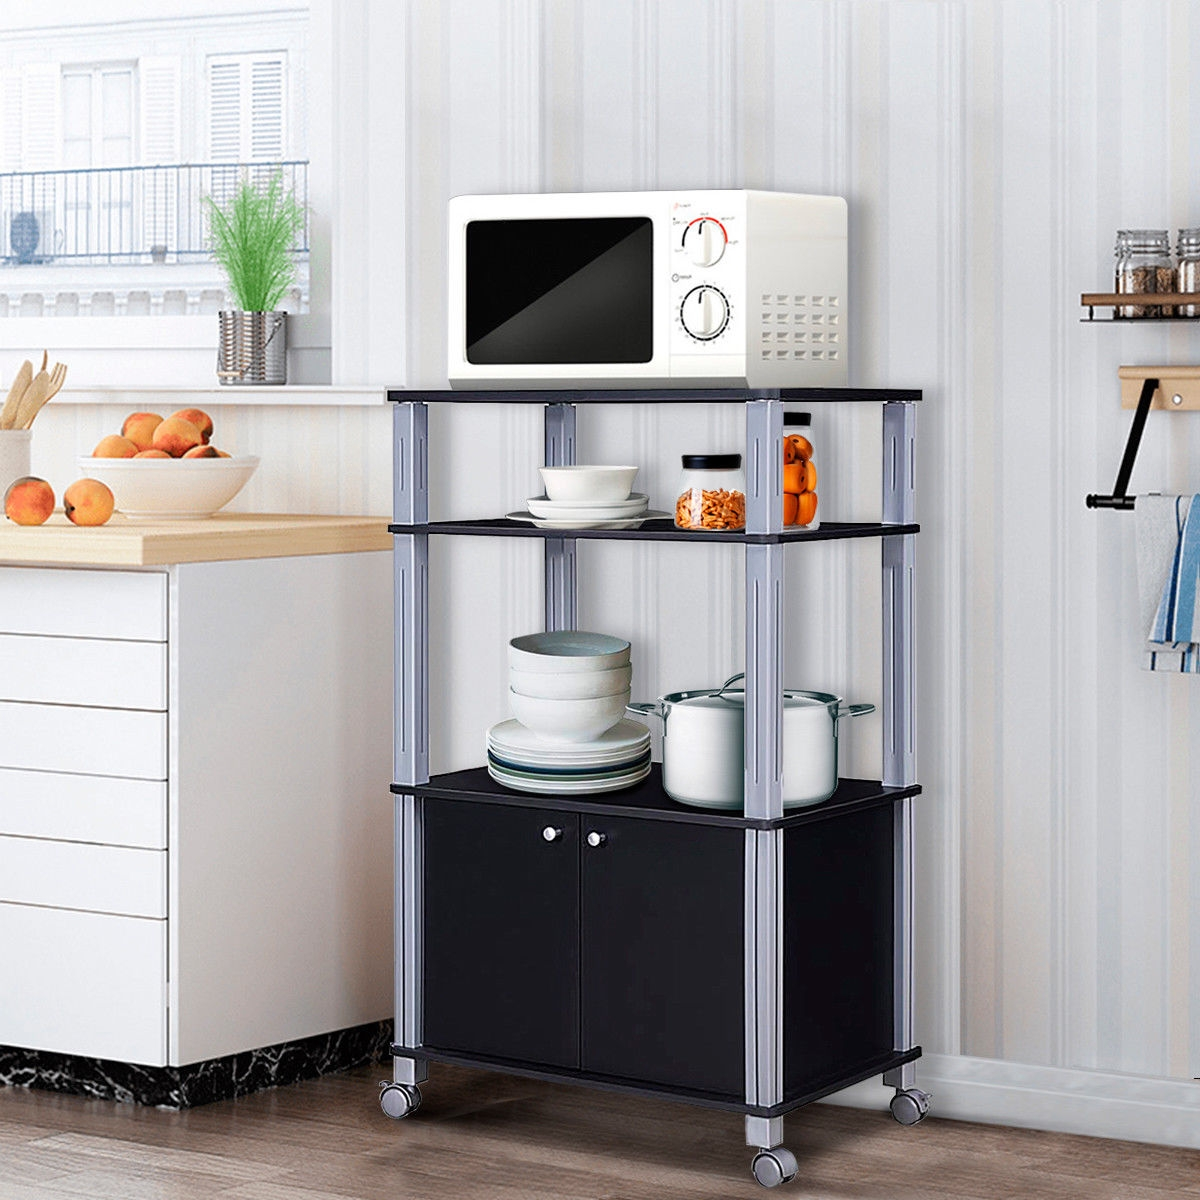 Bakers Rack Microwave Stand Rolling Storage Cart